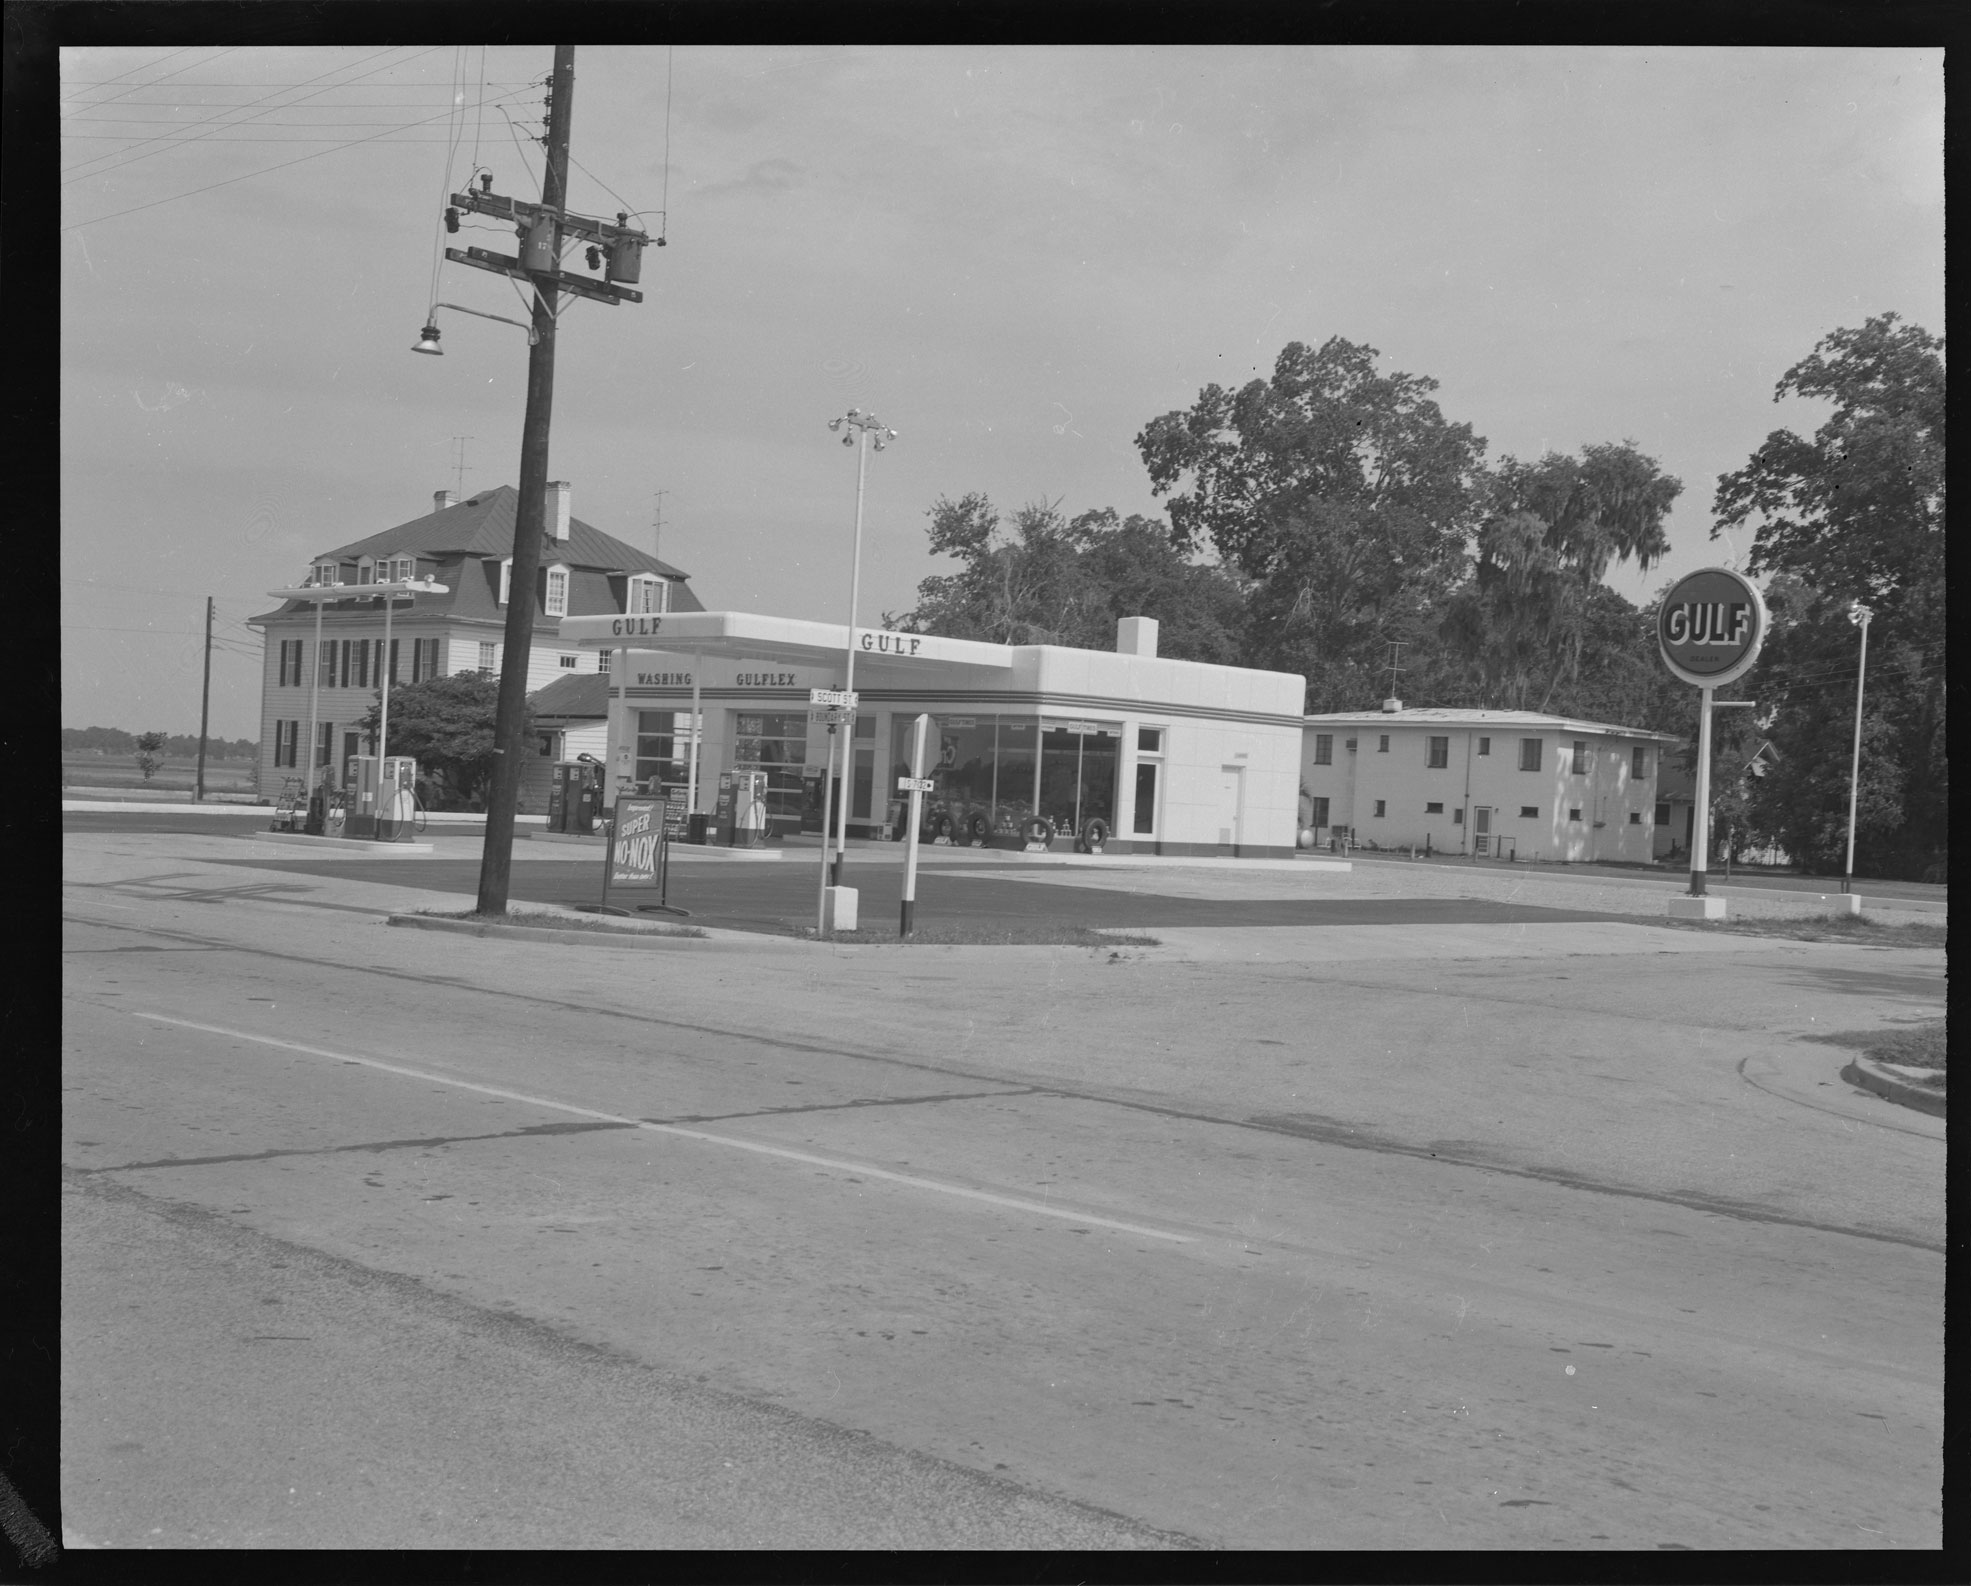 Gulf Service Station at the corner of Scott and Boundary Street